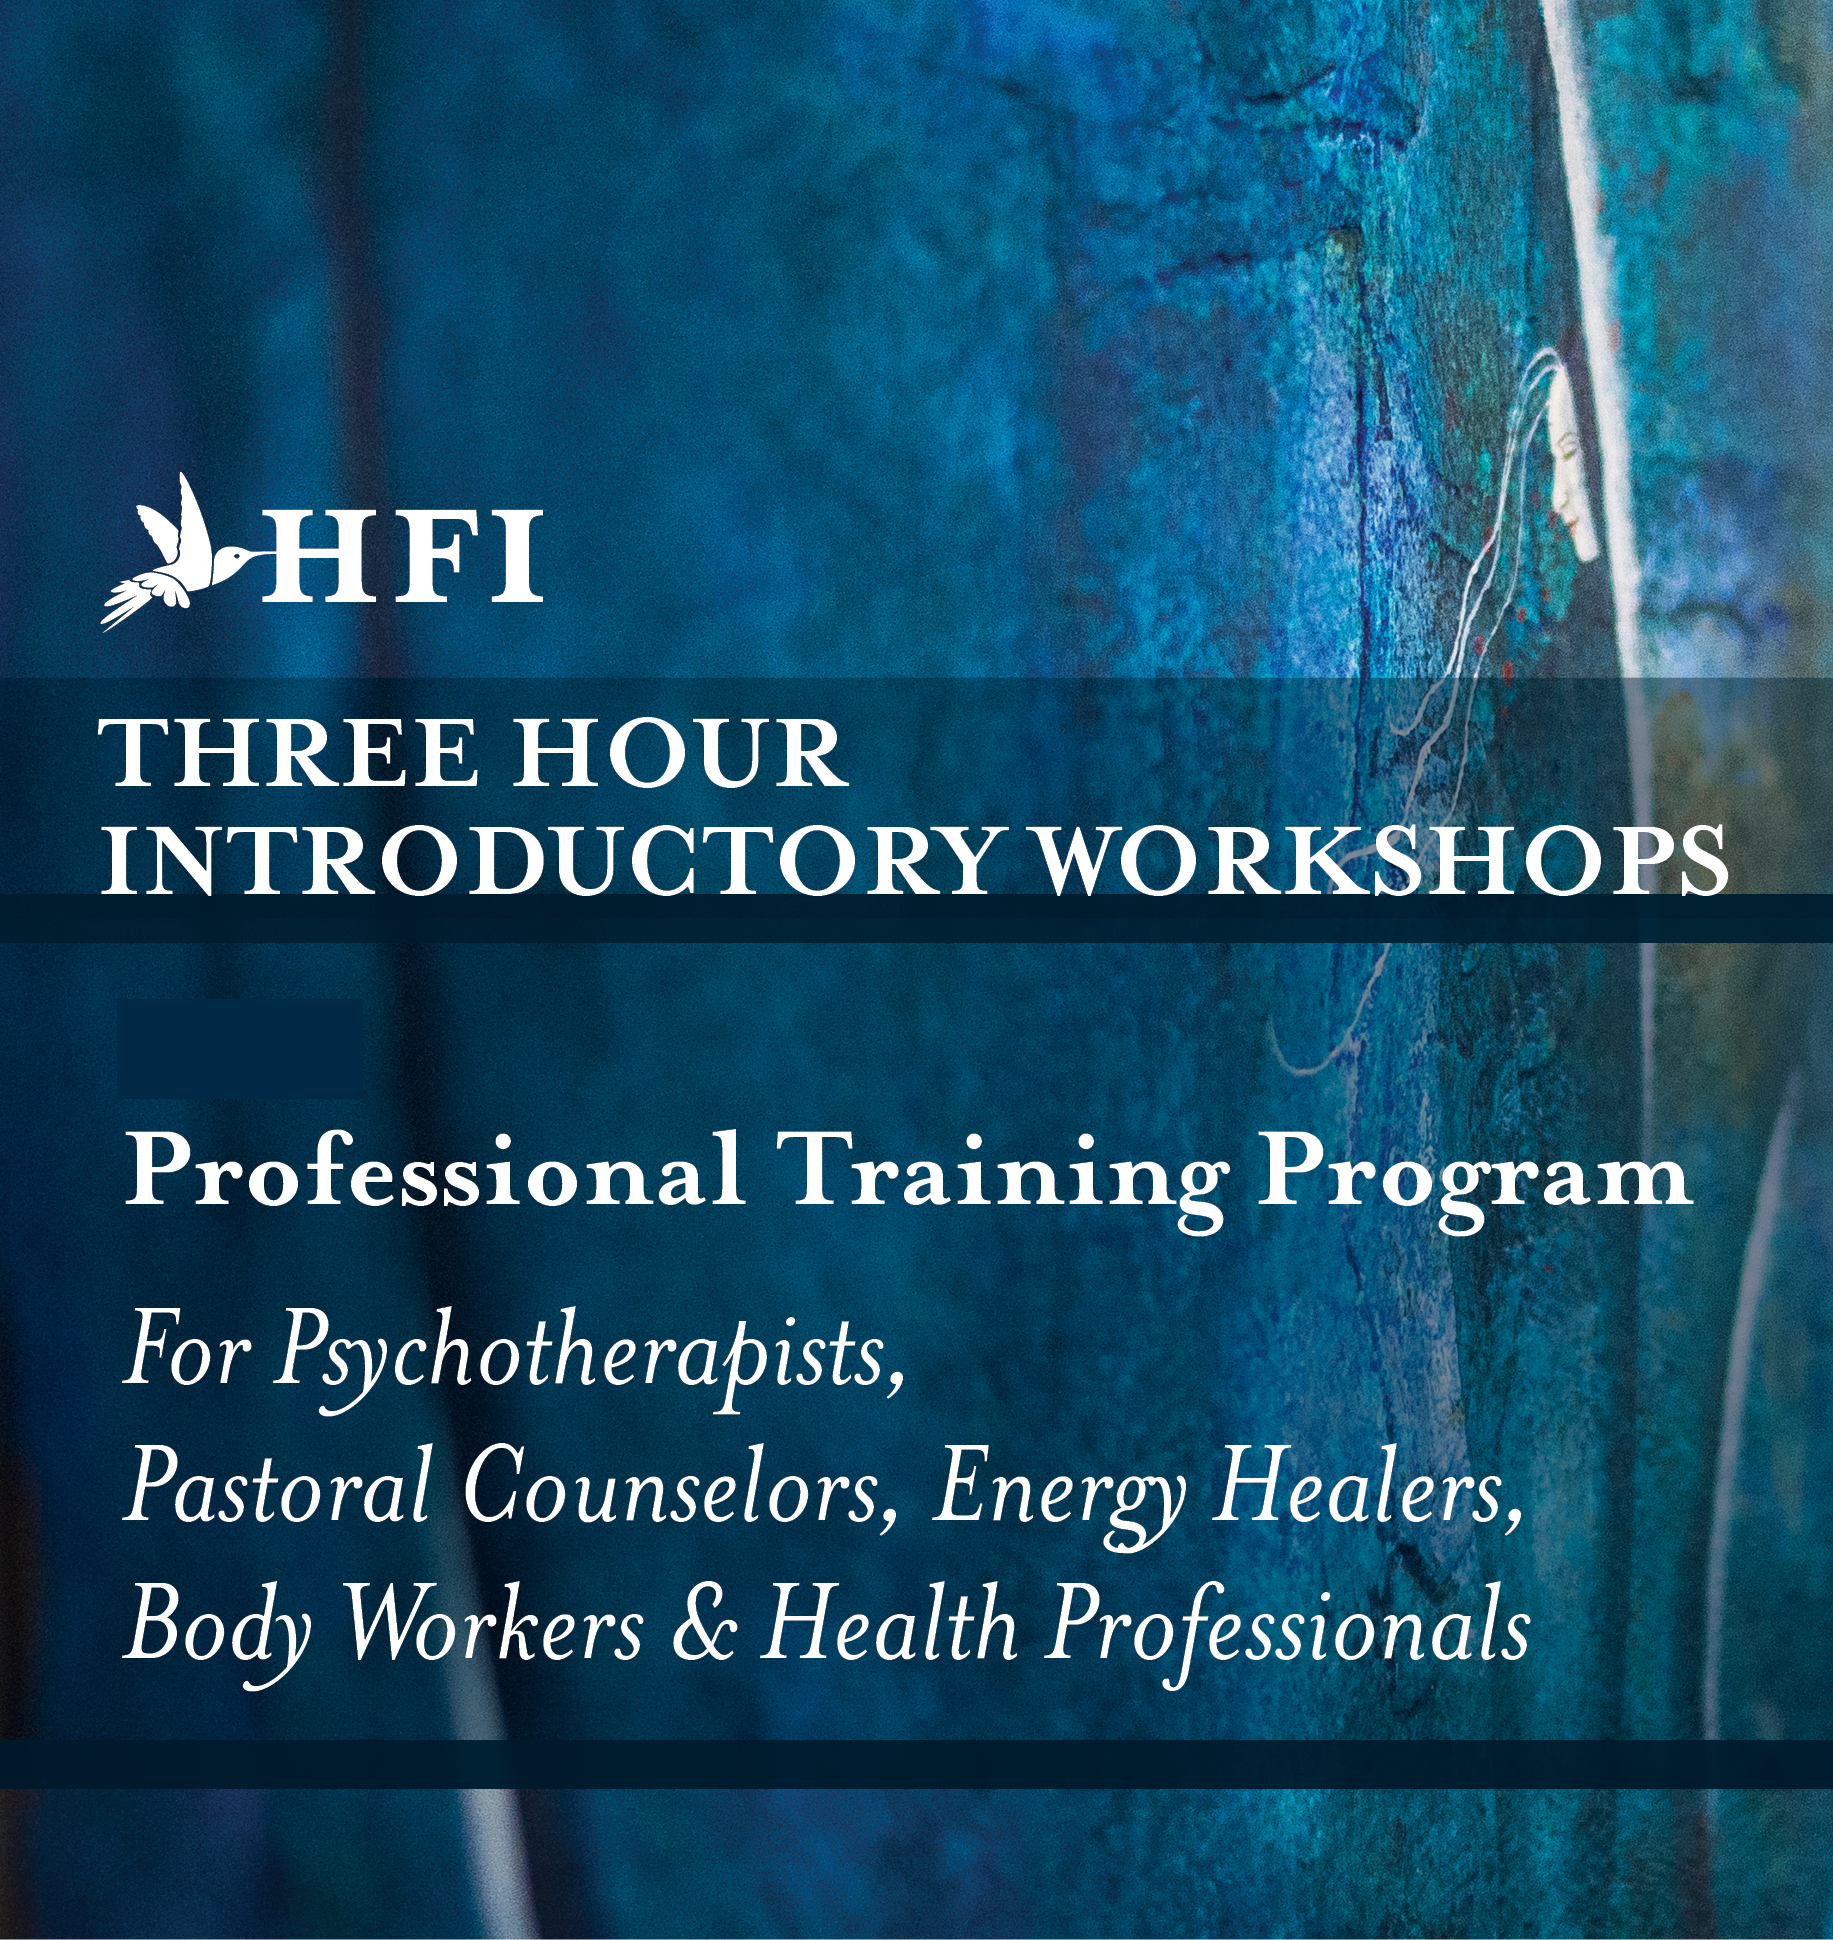 hfi-3-hr-workshop-2014